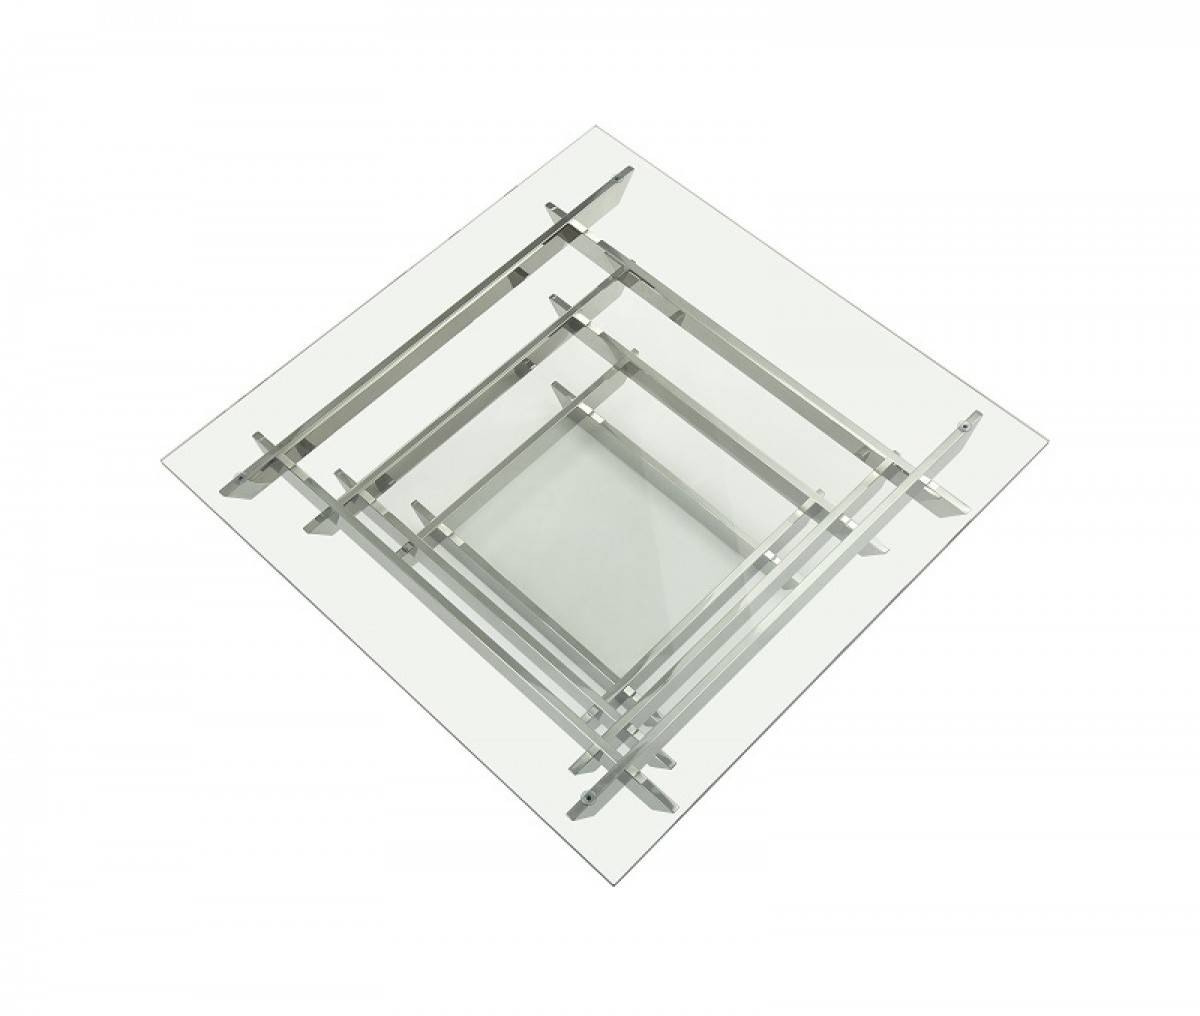 Modrest Upton Modern Square Glass Coffee Table - Coffee Tables with regard to Modern Square Glass Coffee Tables (Image 9 of 15)